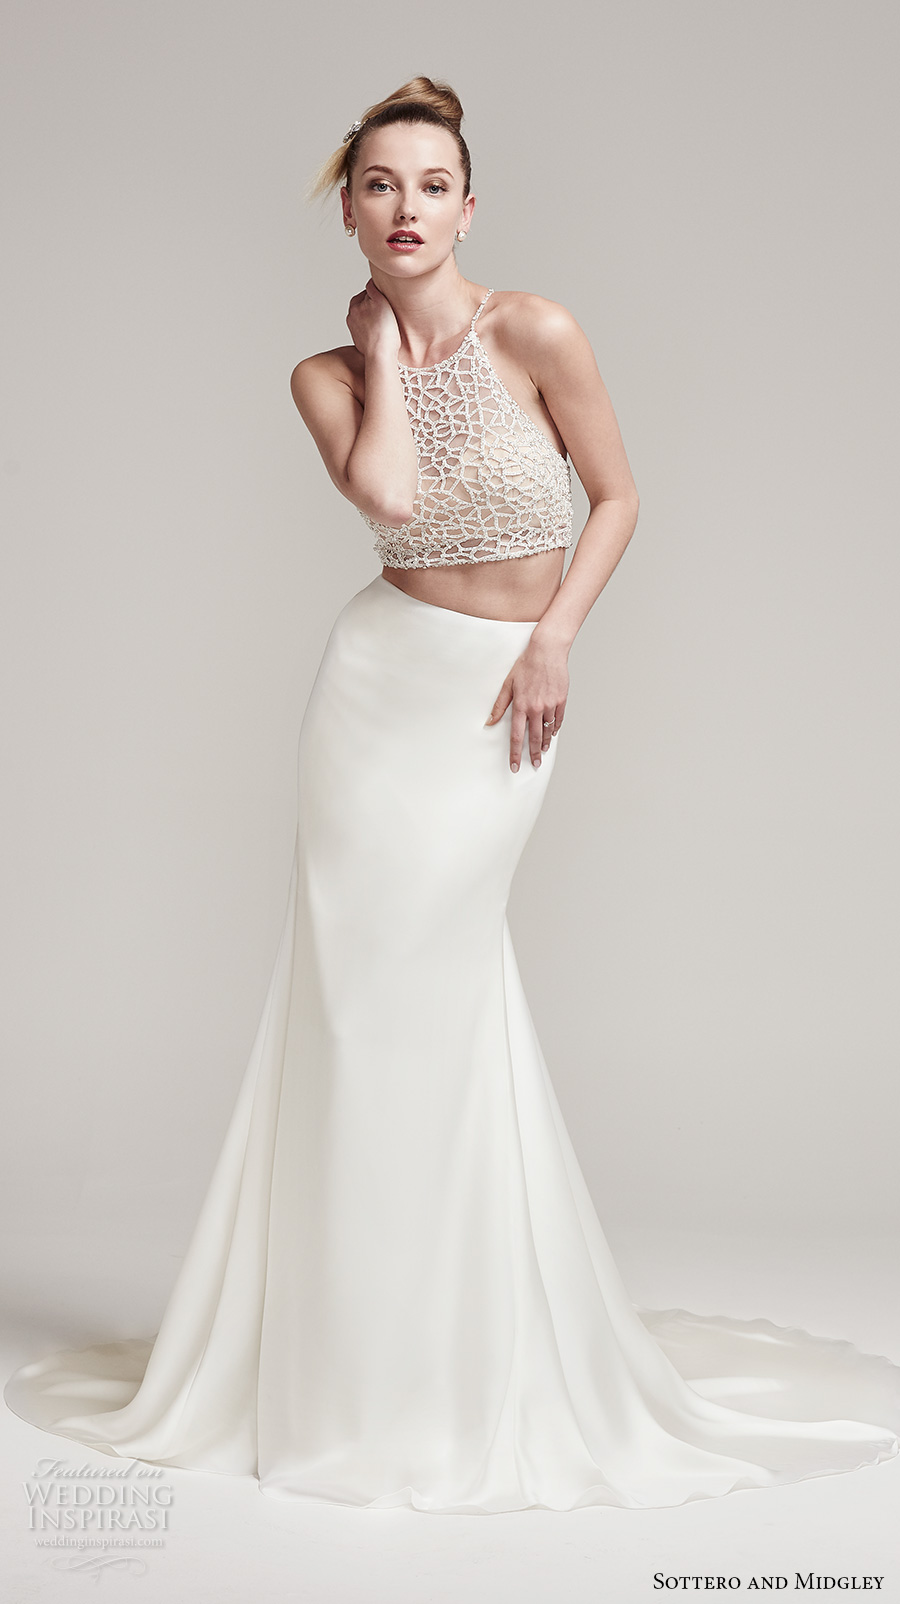 sottero midgley fall 2016 bridal sleeveless halter neck illusion heavily embellished crop top 2 piece satin skirt sheath wedding dress chapel train (jude top alliett skirt) mv